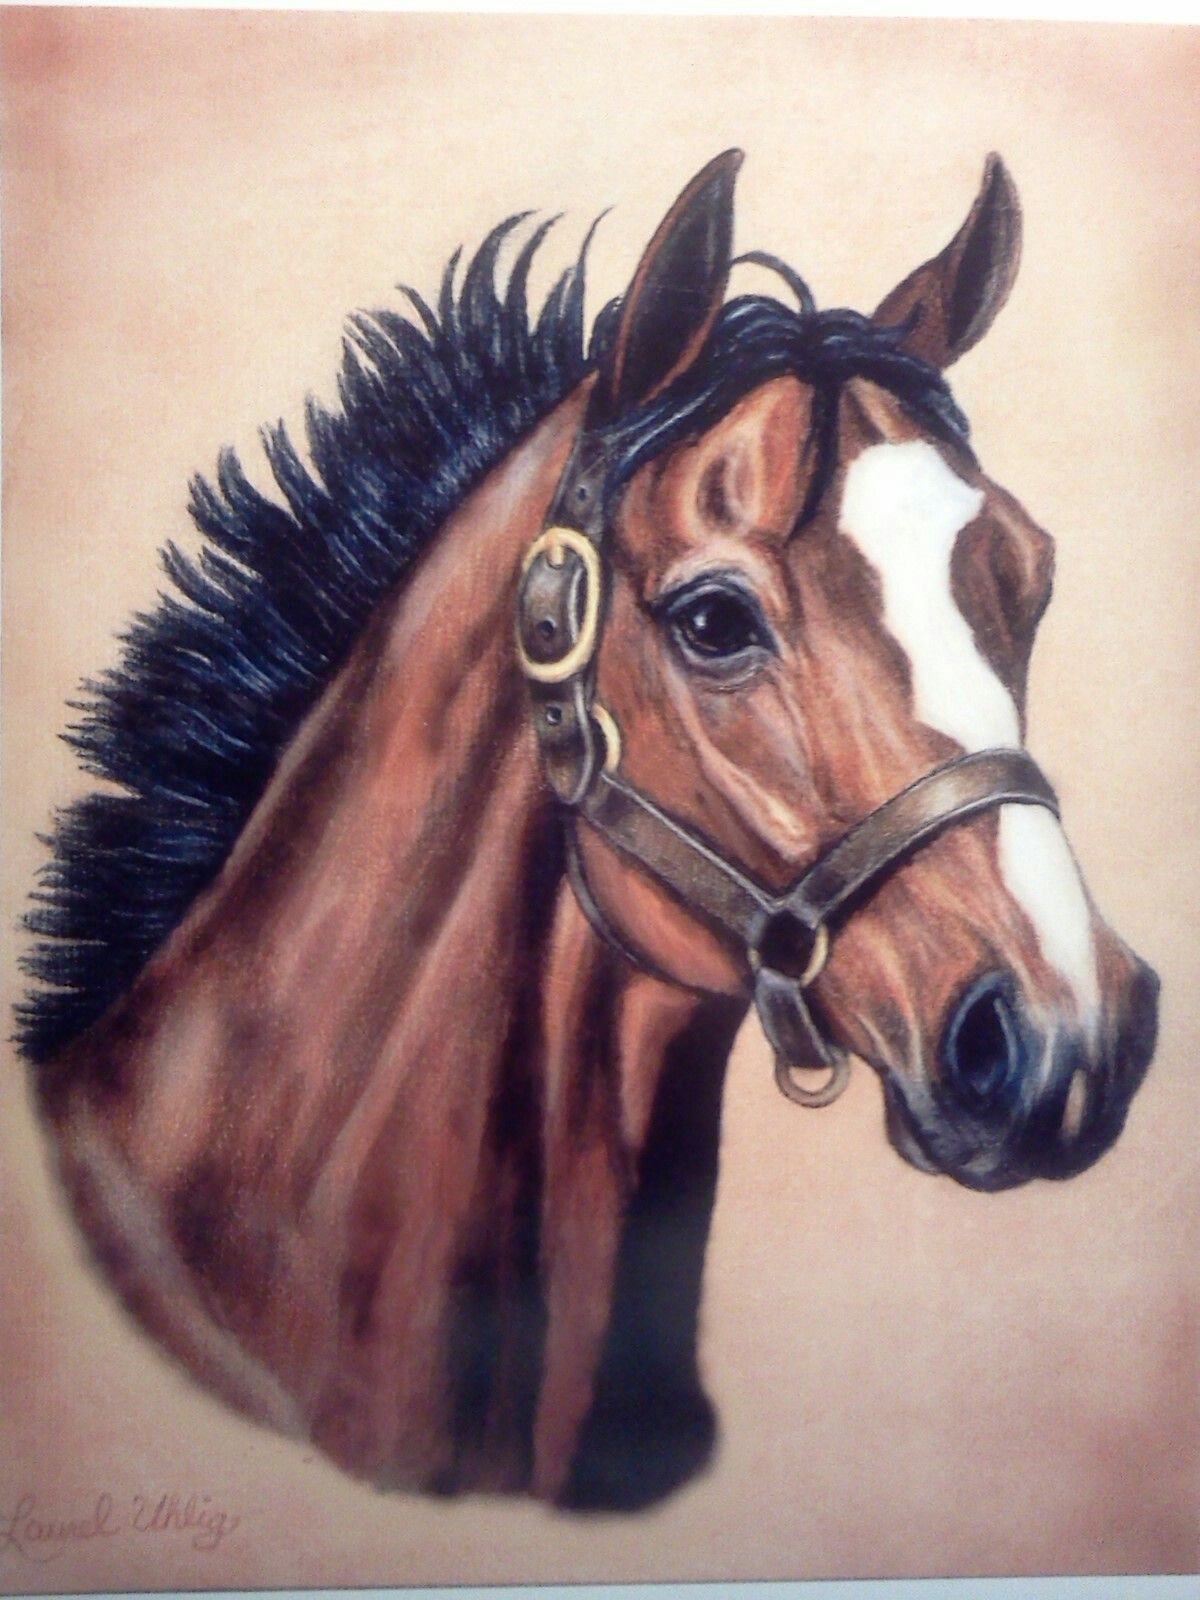 Thoroughbred Horse In Colored Pencil By Laurel Uhlig Horse Art Colored Pencil Artwork Horse Portrait